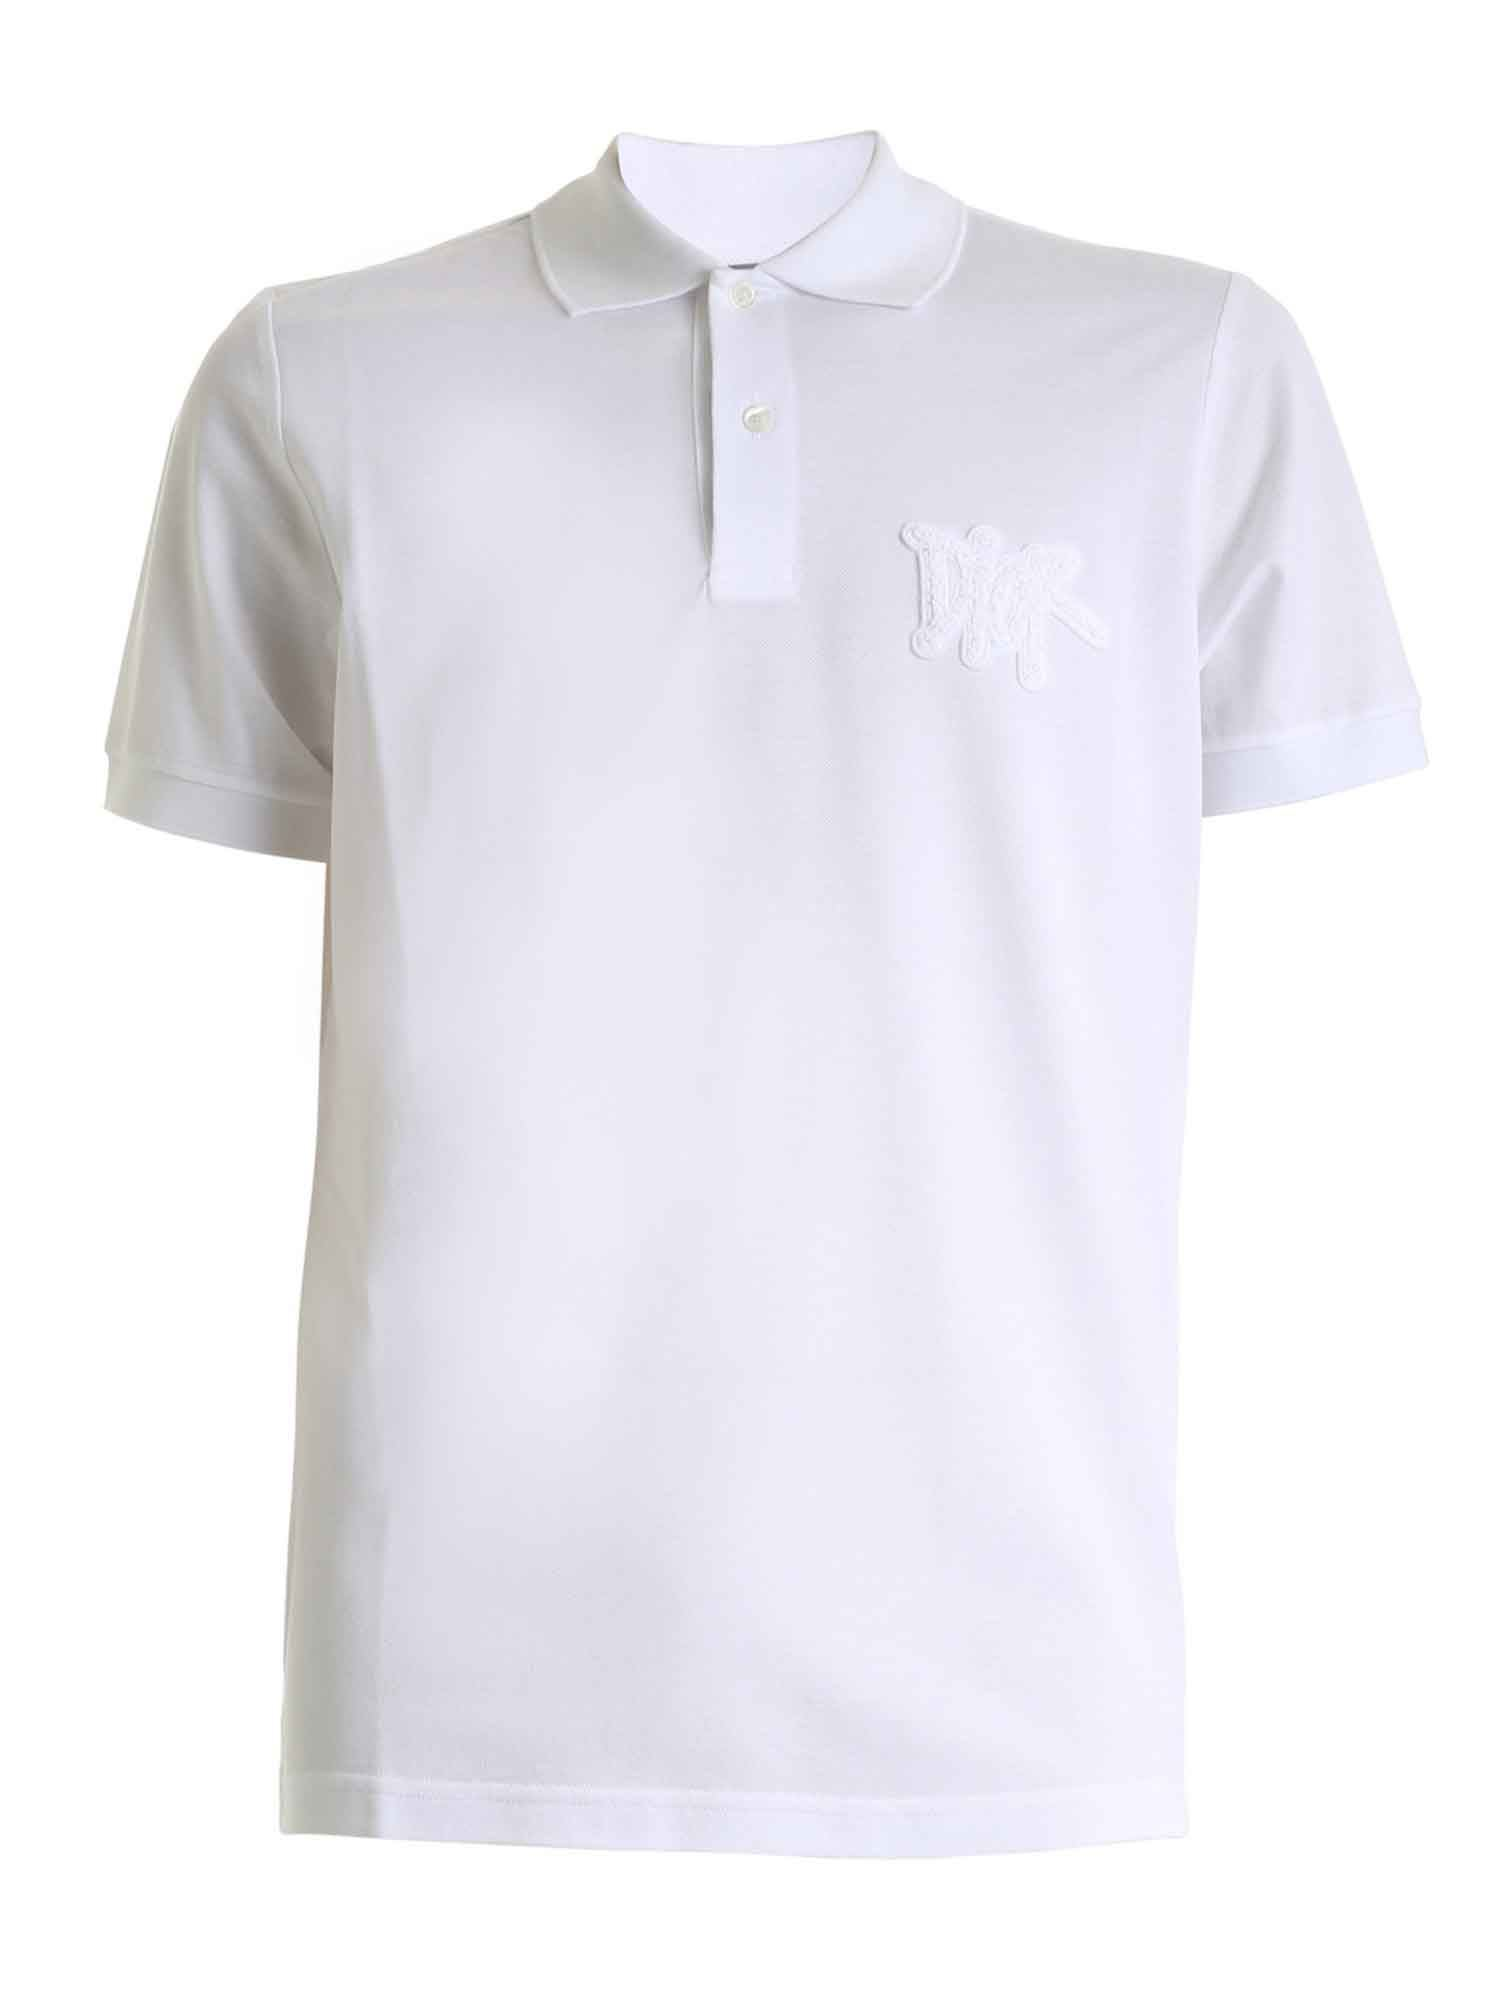 Dior AND SHAWN POLO SHIRT IN WHITE